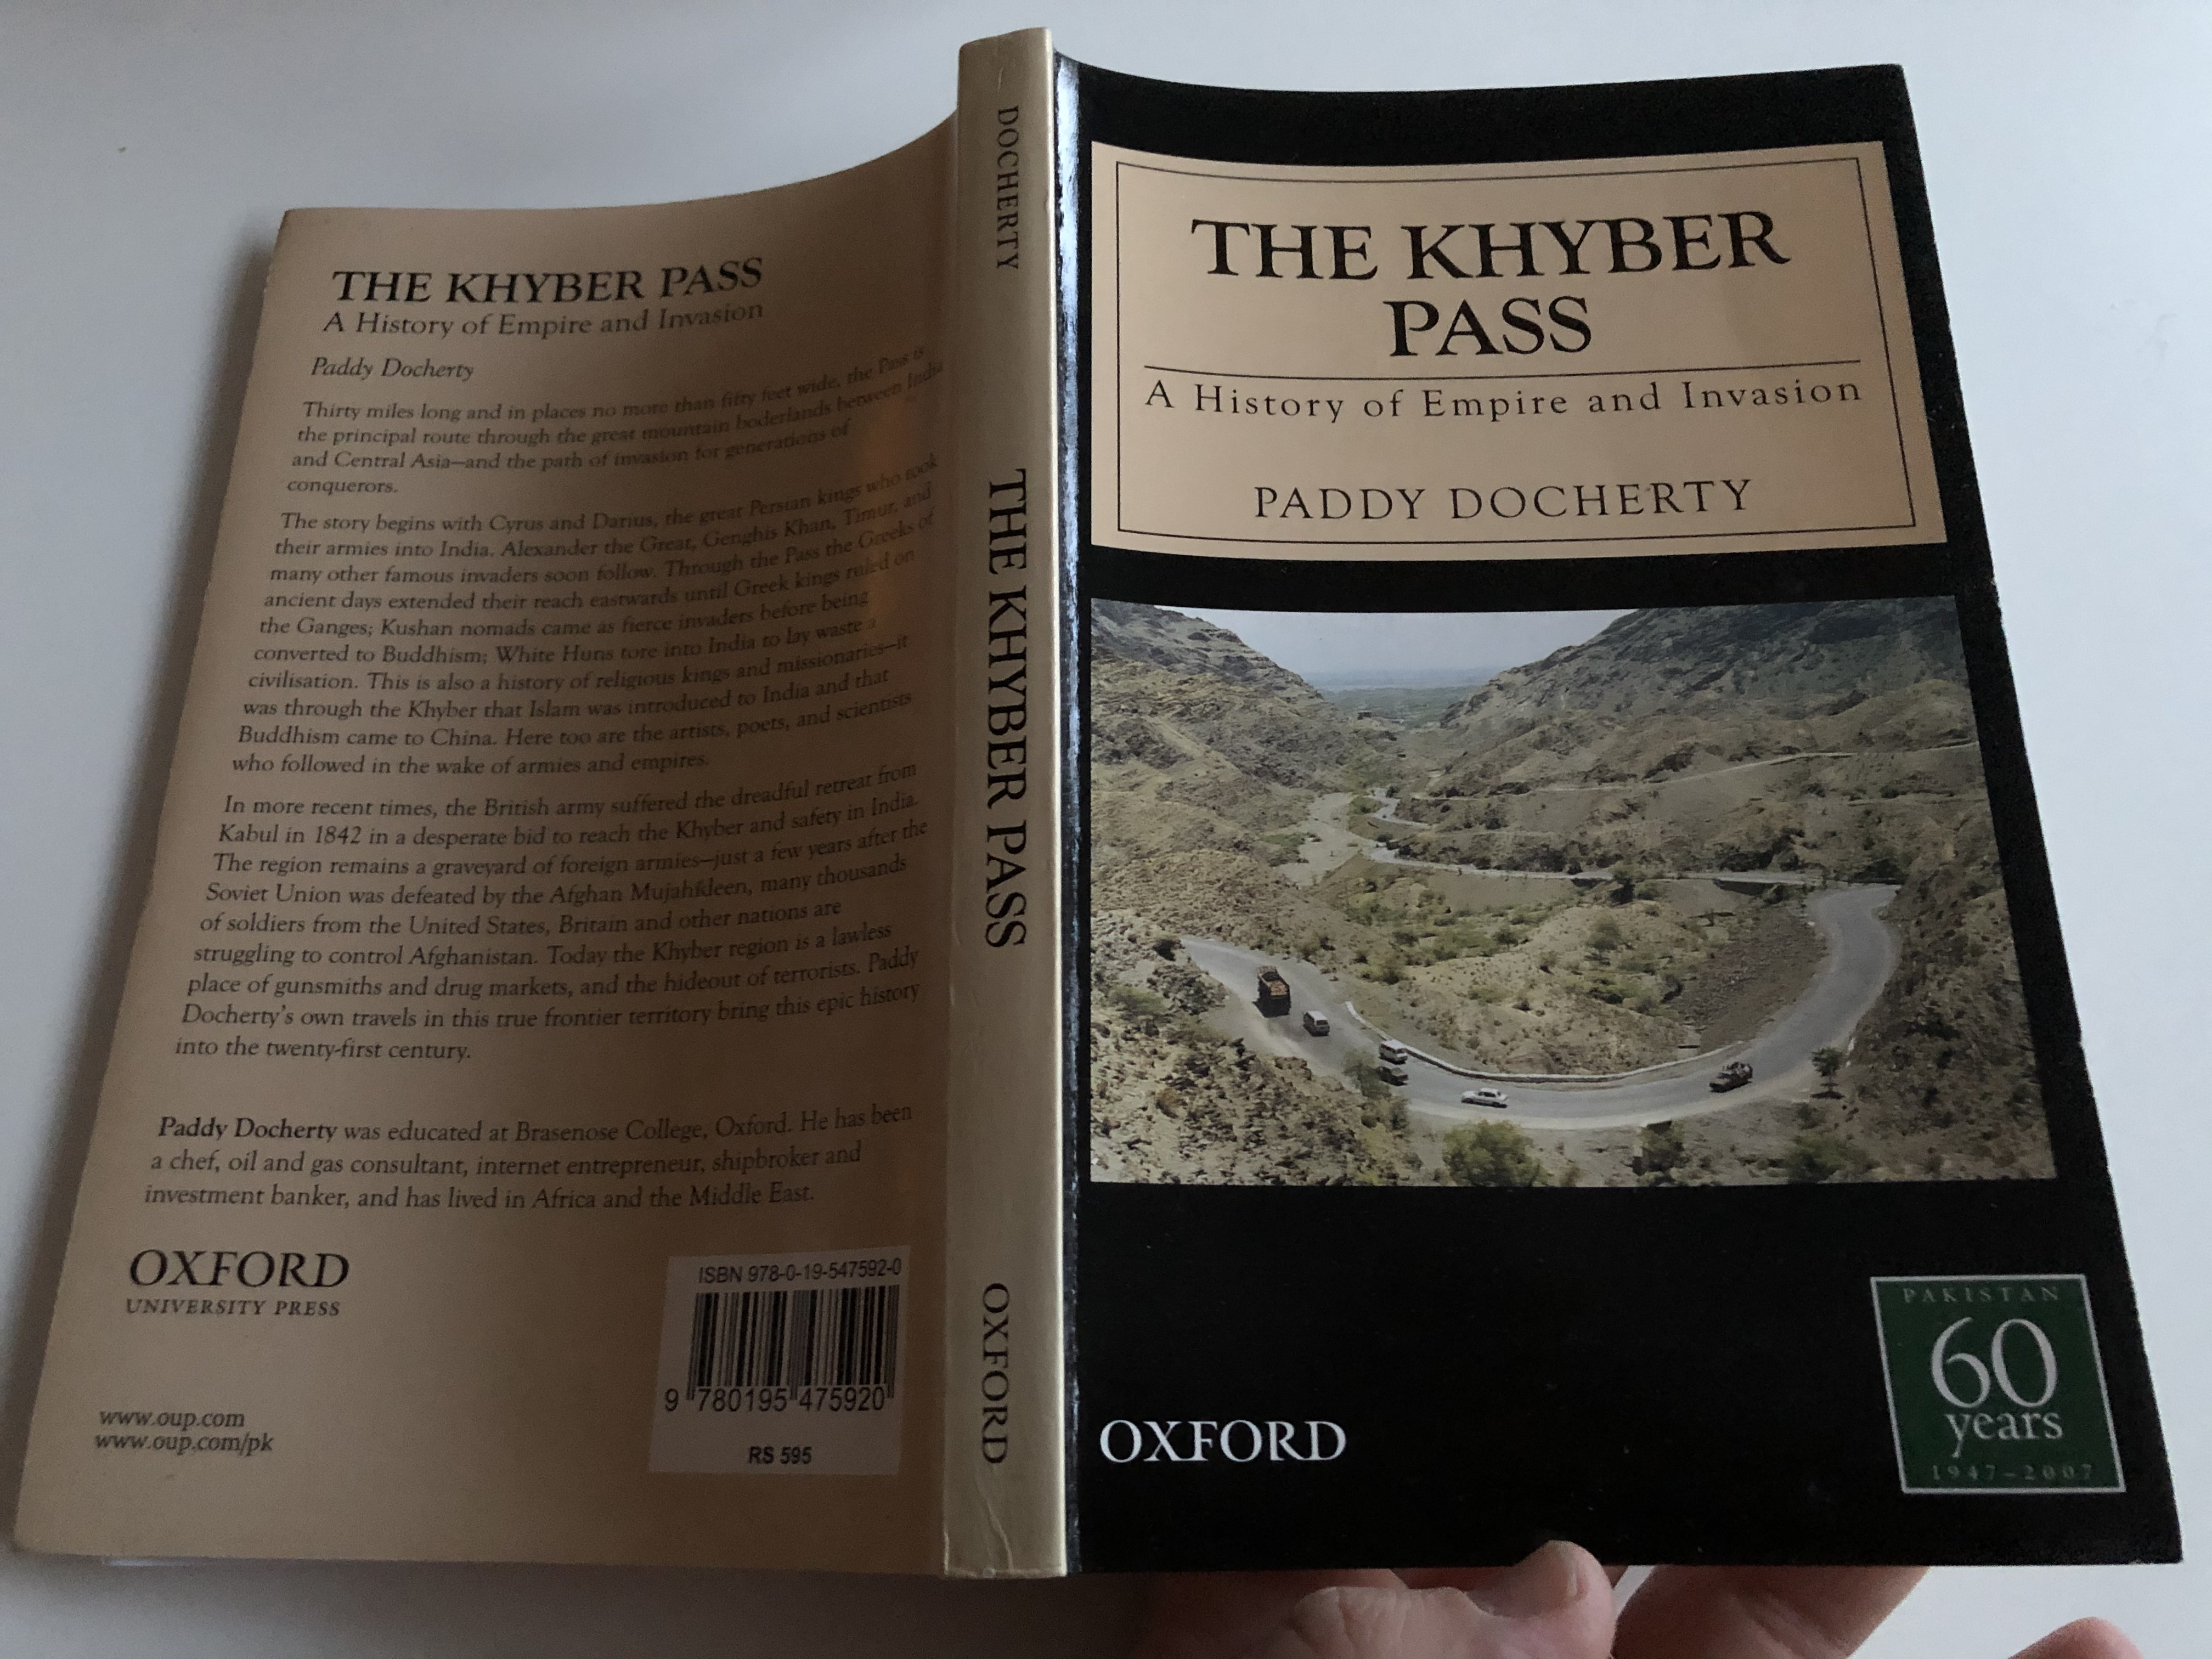 the-khyber-pass-a-history-of-empire-and-invasion-by-paddy-docherty-13-.jpg